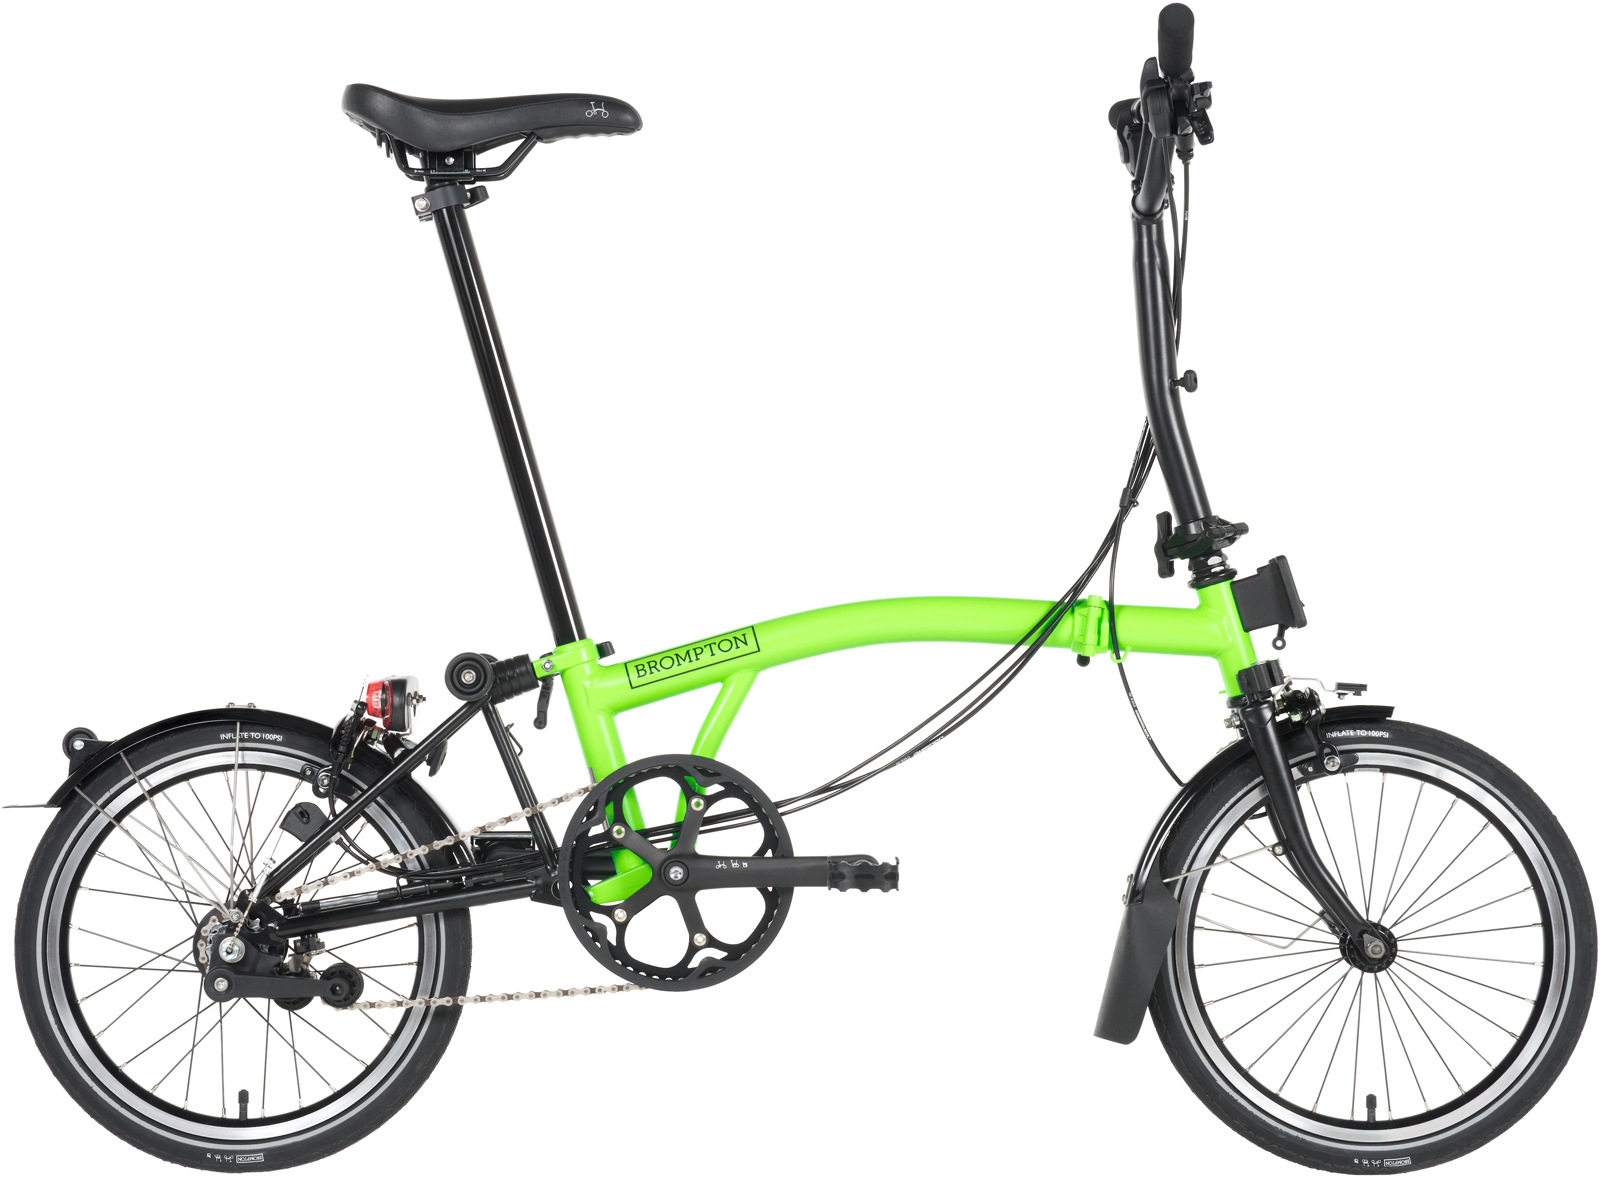 Electric Bikes For Sale >> Brompton Black Edition 2017 - Lime Green H6L - shop all new Brompton Black editions at NYCeWheels